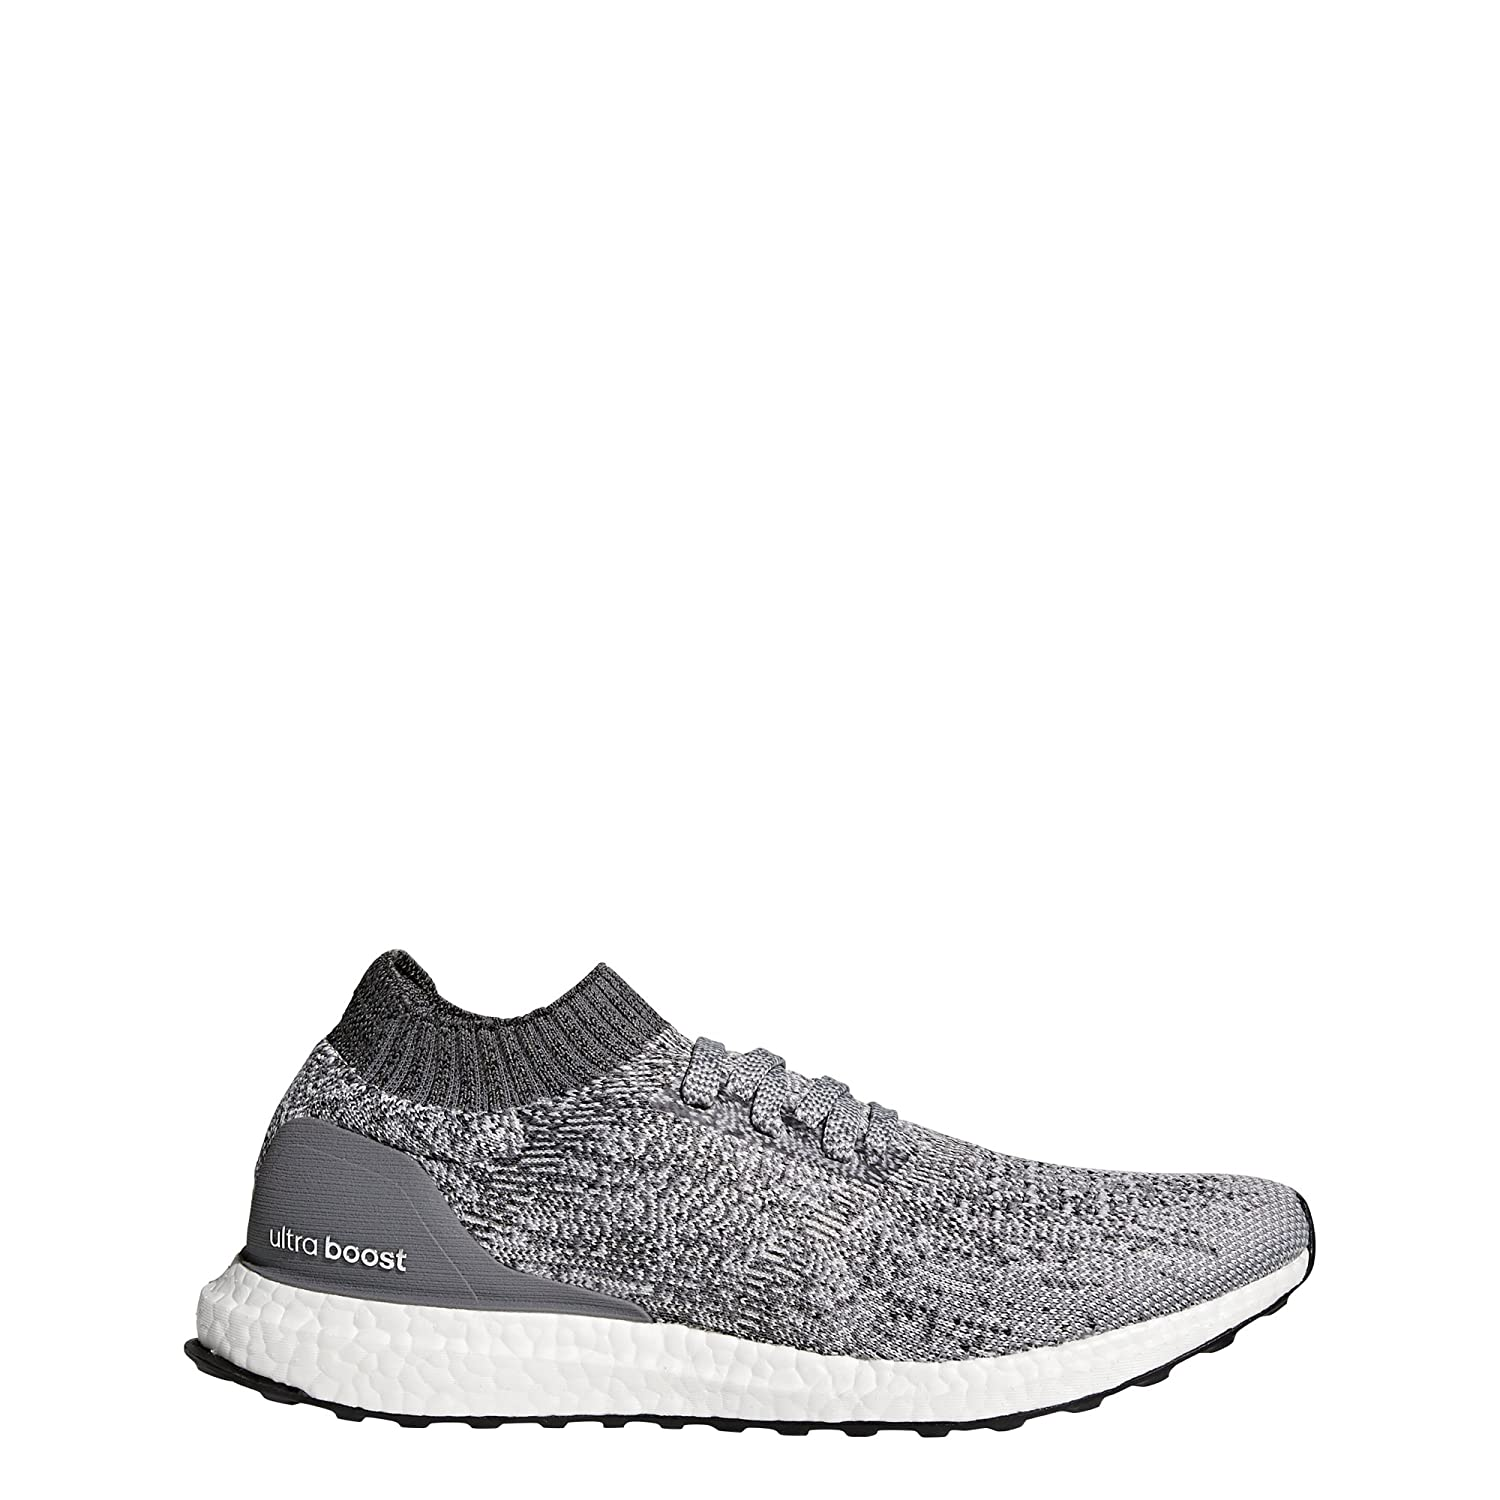 rfstore: Adidas Ultra BOOST Uncaged, sneakers shoes ultra